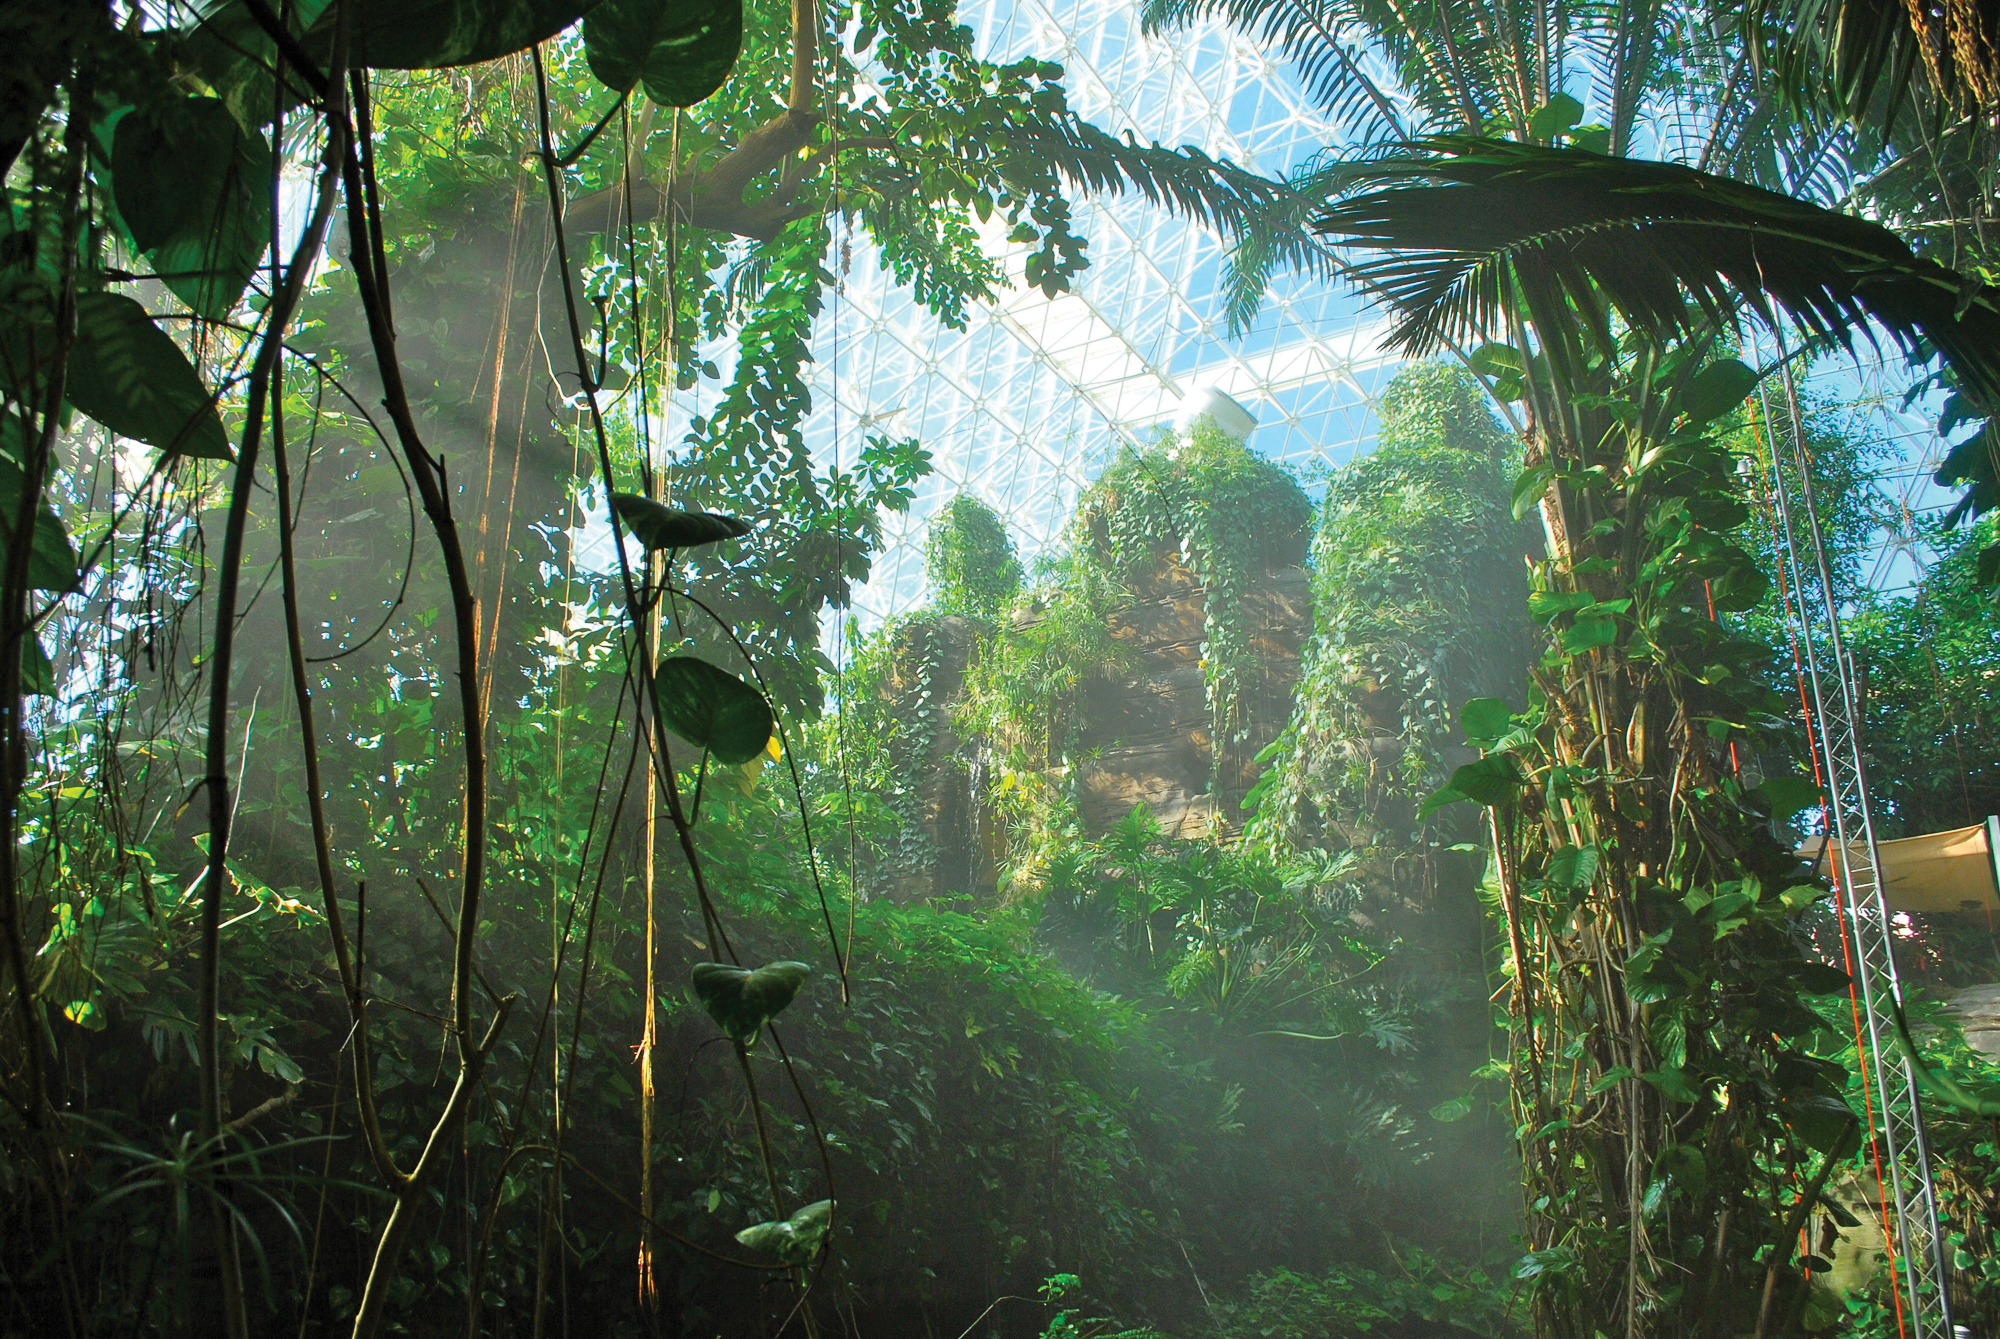 (3) The rainforest biome, Biosphere 2, 1991 [http://www.ecohustler.co.uk]